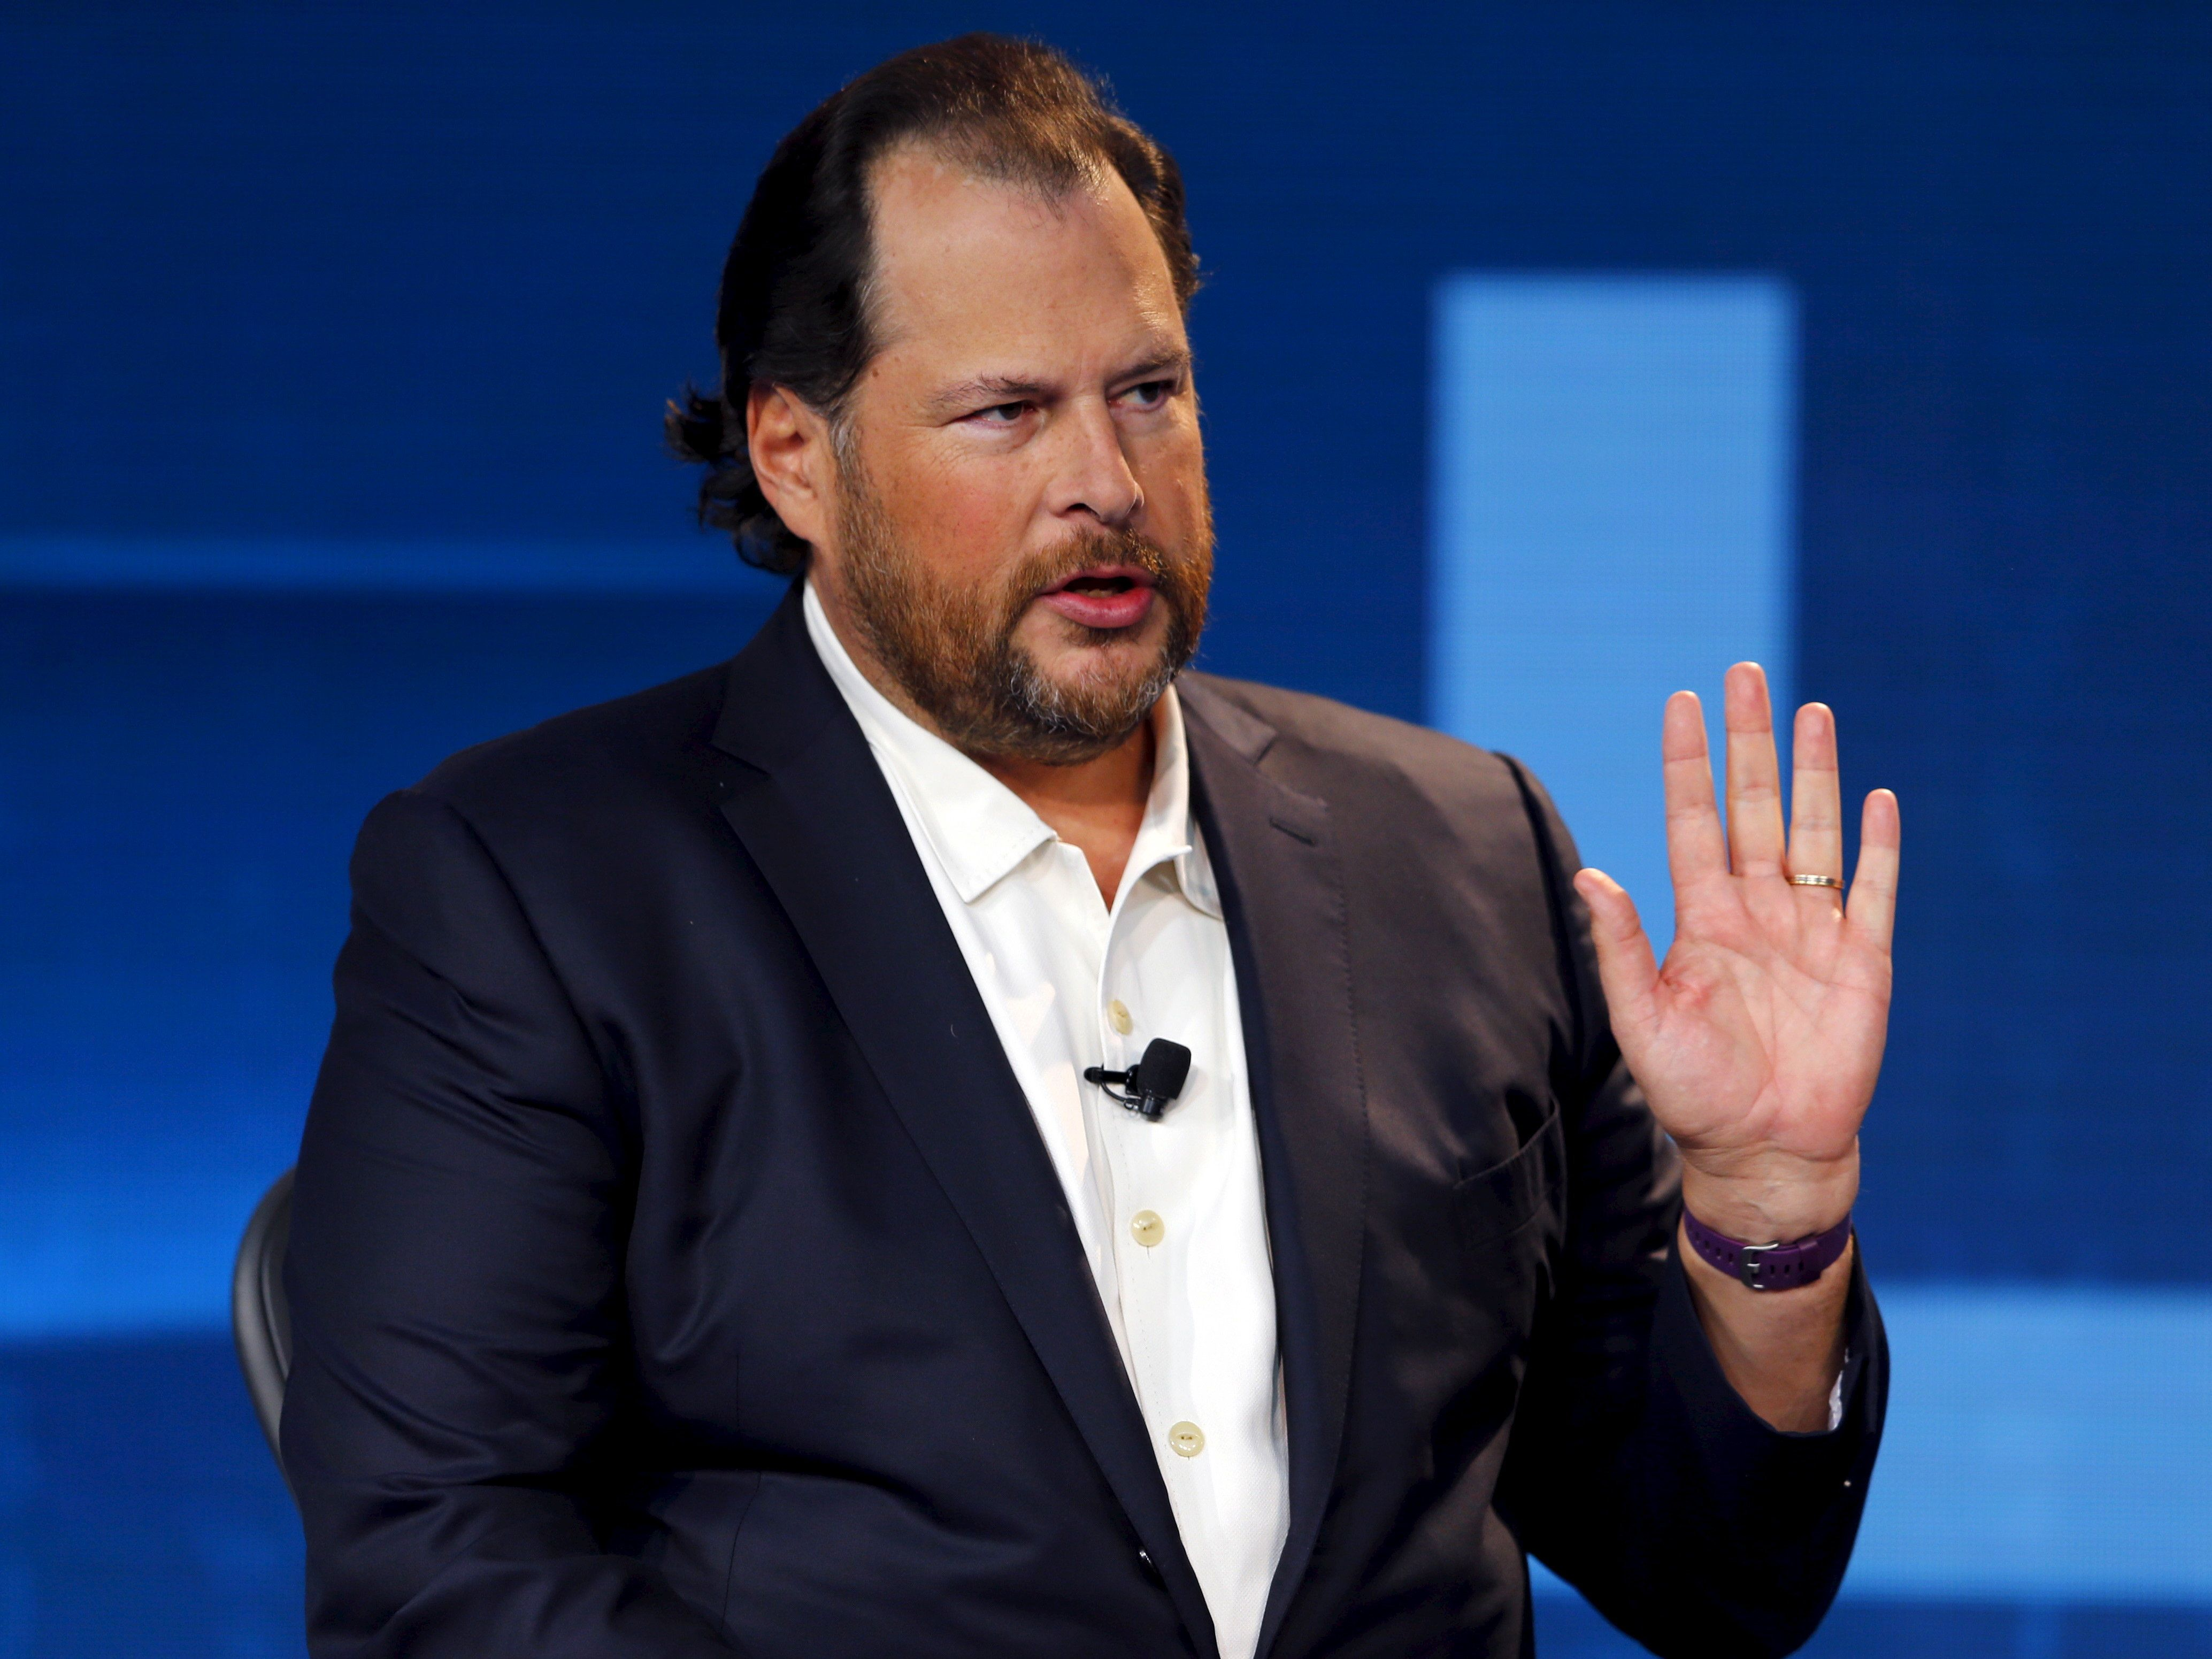 Salesforce chairman and CEO Marc Benioff has made a name for himself as an activist CEO, but has been silent on Donald Trump'